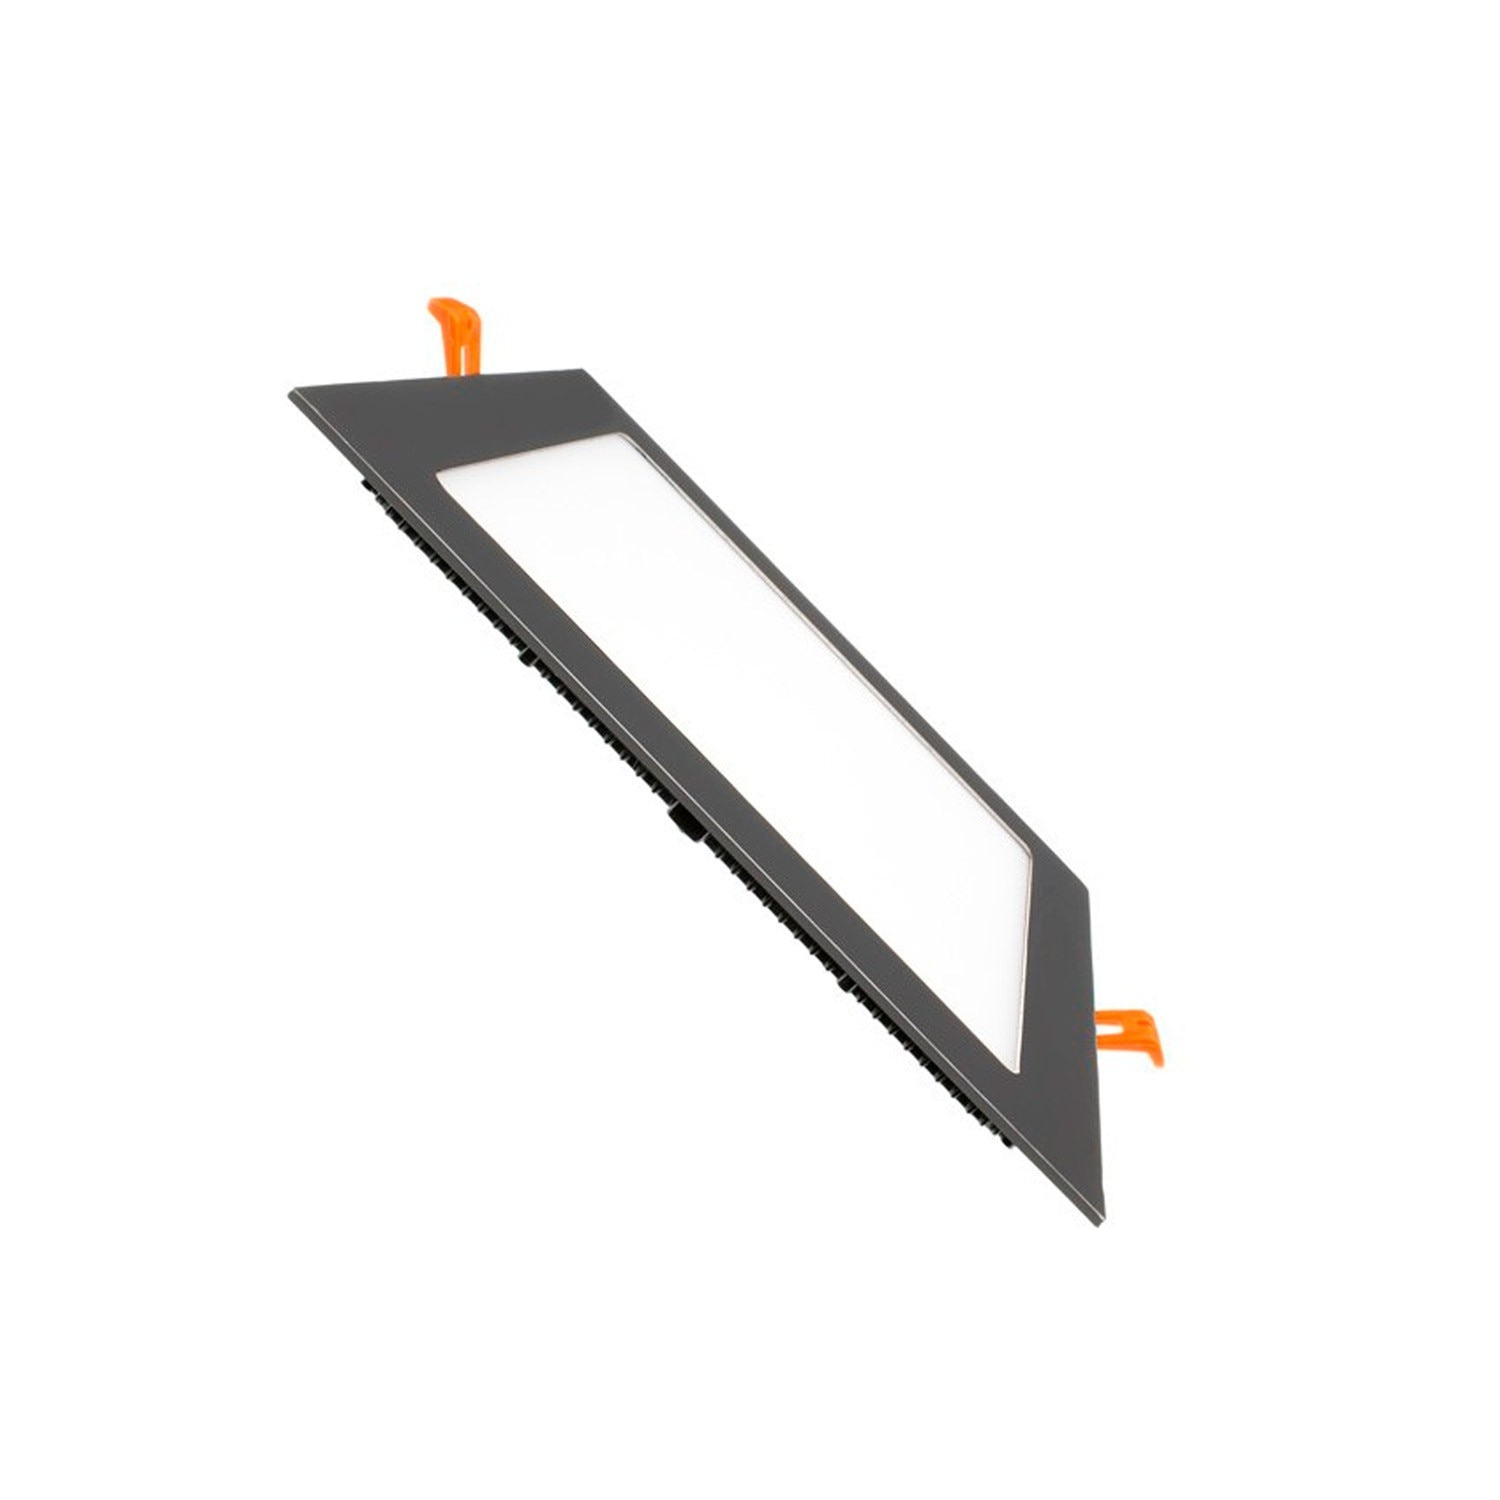 Comprar Placa LED Cuadrada SuperSlim 12W Marco Negro - efectoLED